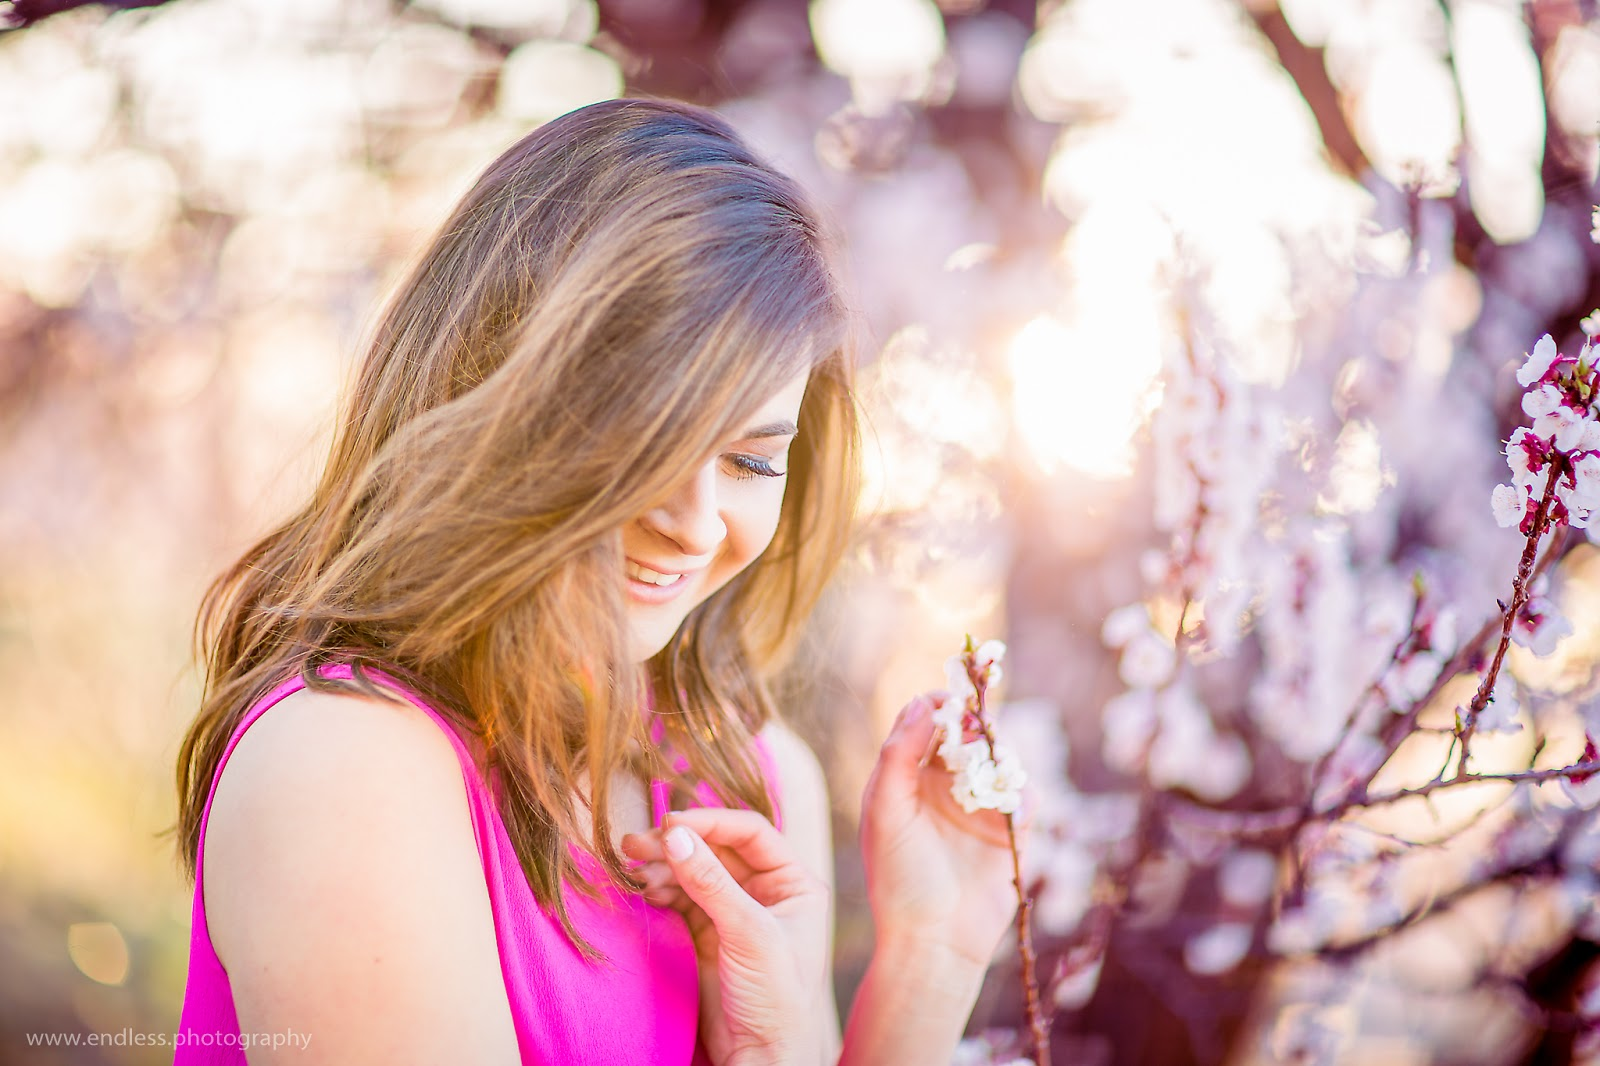 Logan Utah Photographer, Cache Valley, Brigham, Utah, Photographer, Model, Senior, Orchard, Blossoms, Portraits, High School